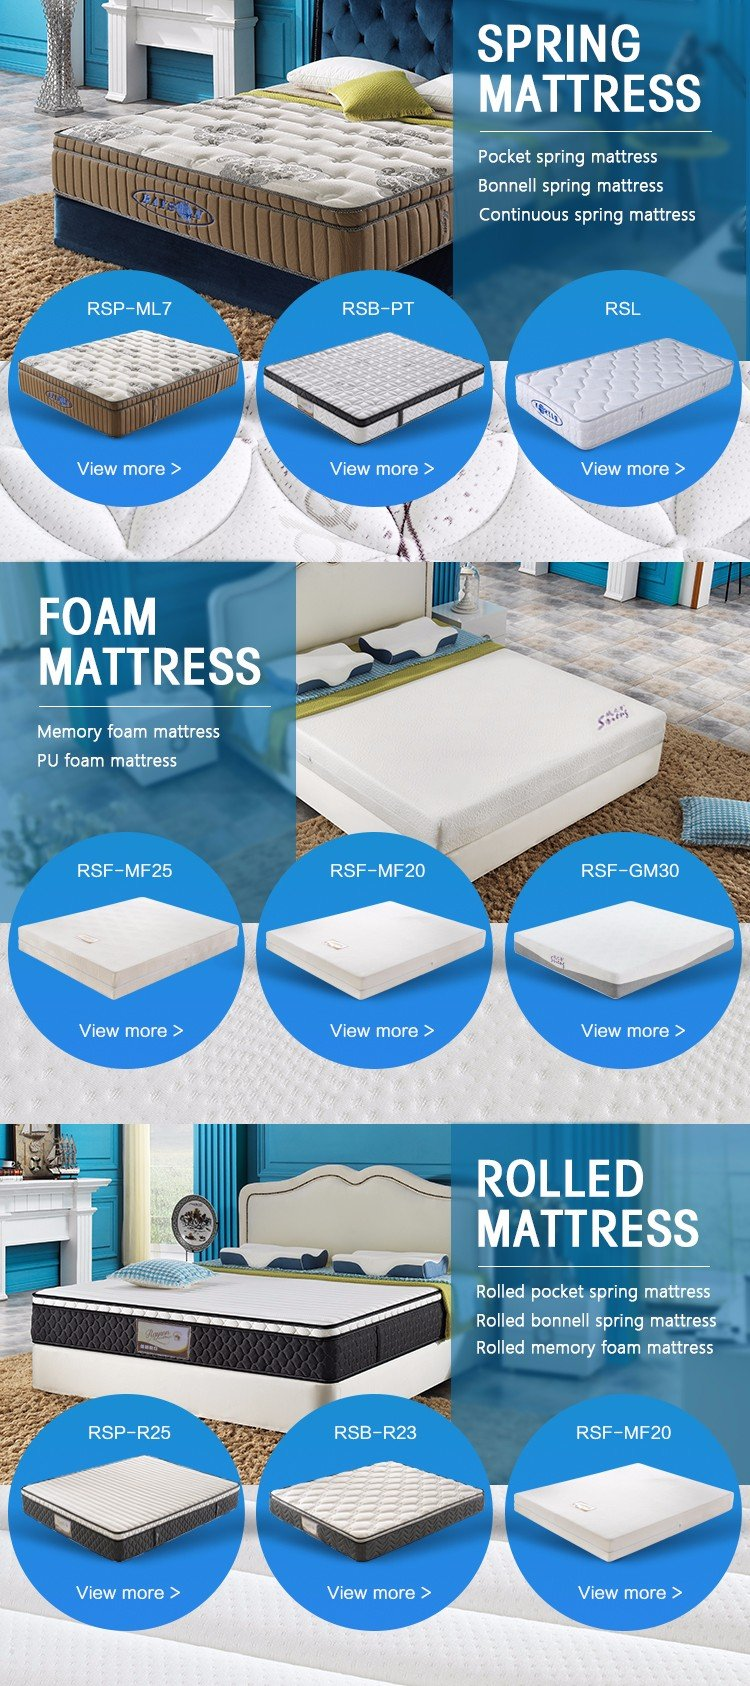 Rayson Mattress High-quality sleepwell memory foam mattress manufacturers-7